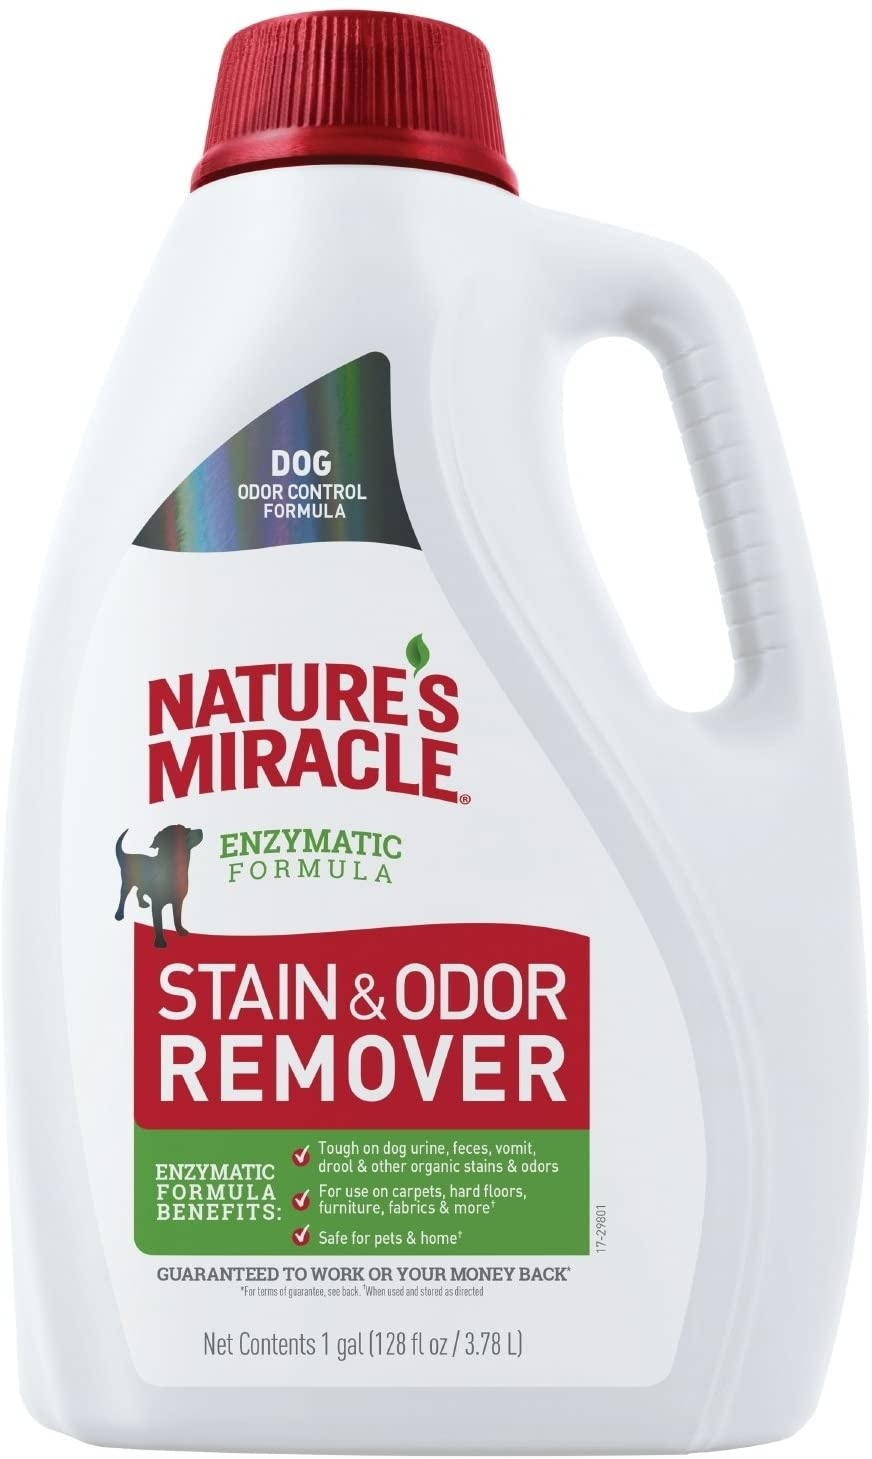 Nature's Miracle Nature's Miracle Stain & Odor Remover